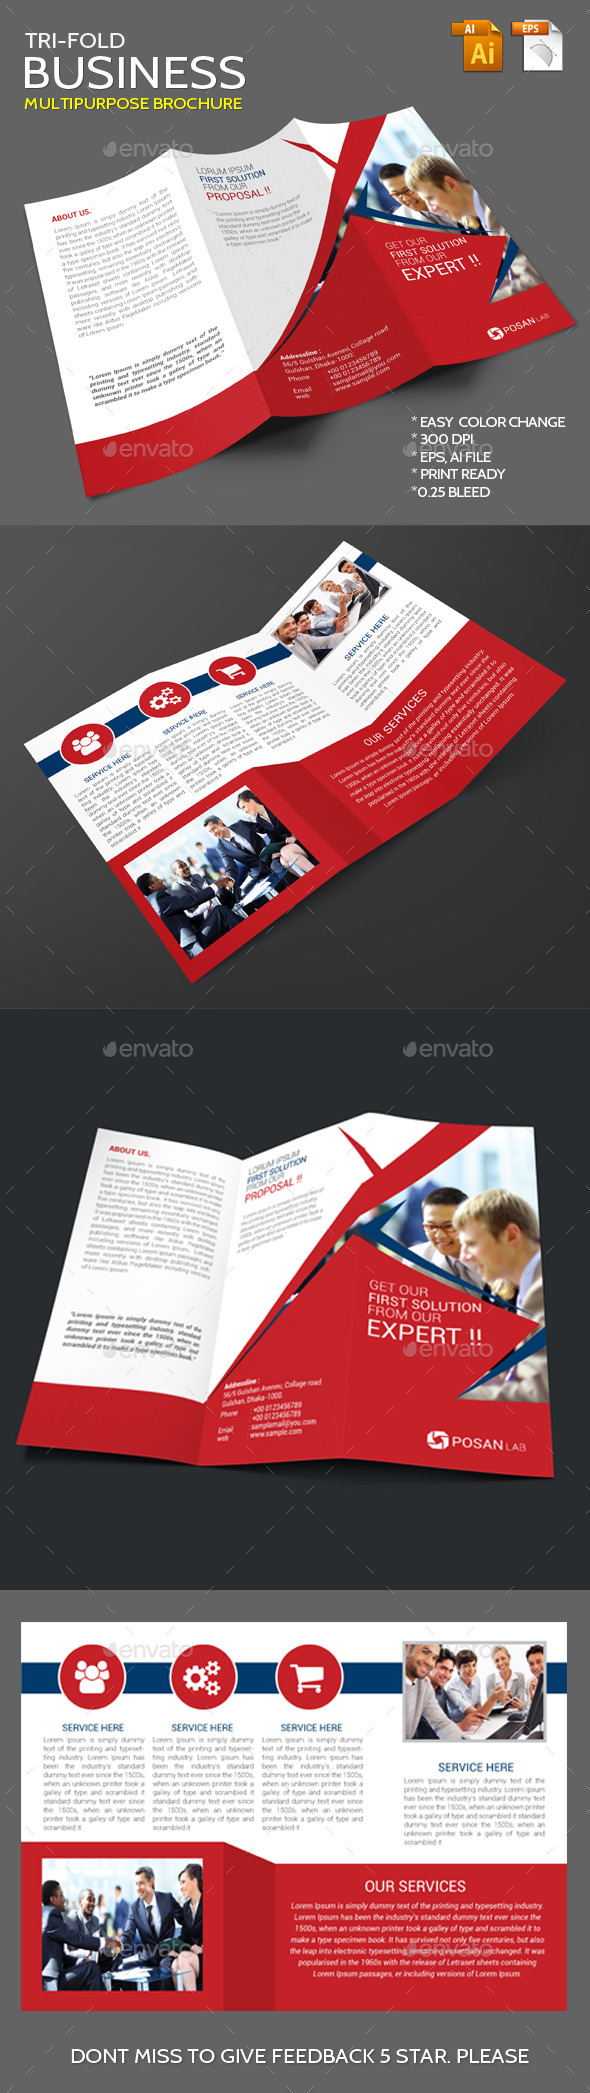 GraphicRiver Business Corporate Trifold Brochure 11449145